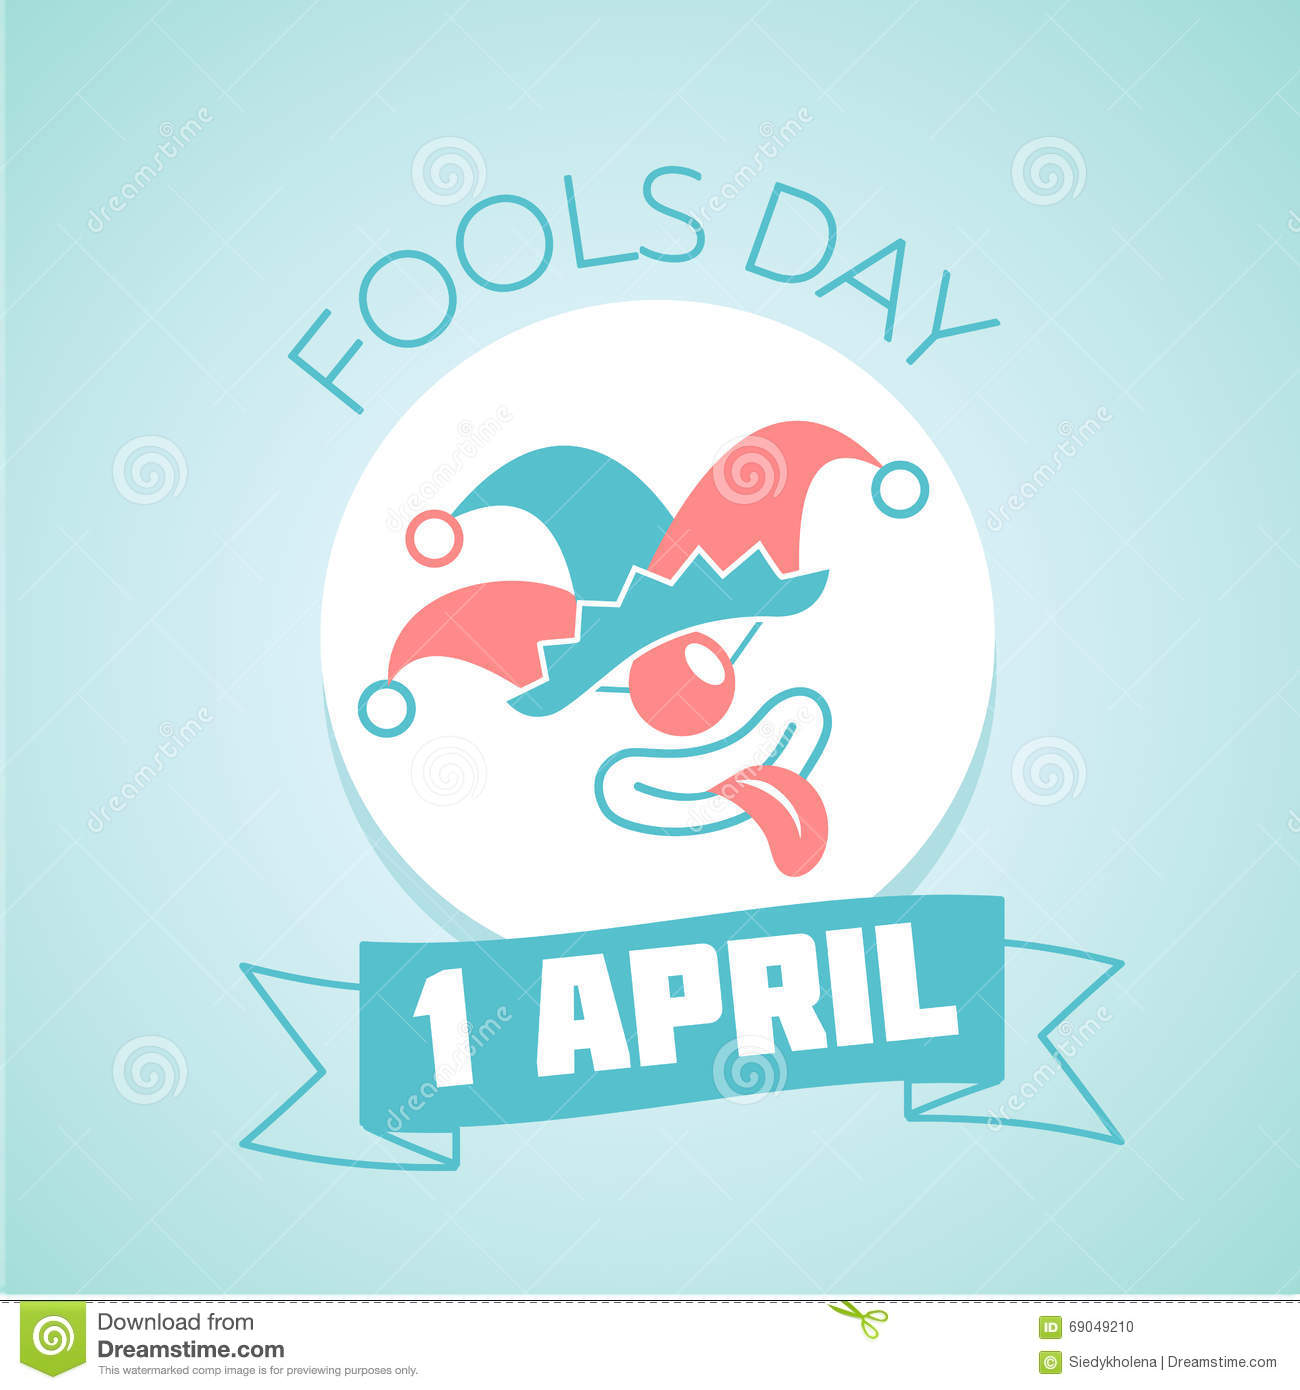 Calendar April Fools : April fools day calendar icon vector illustration